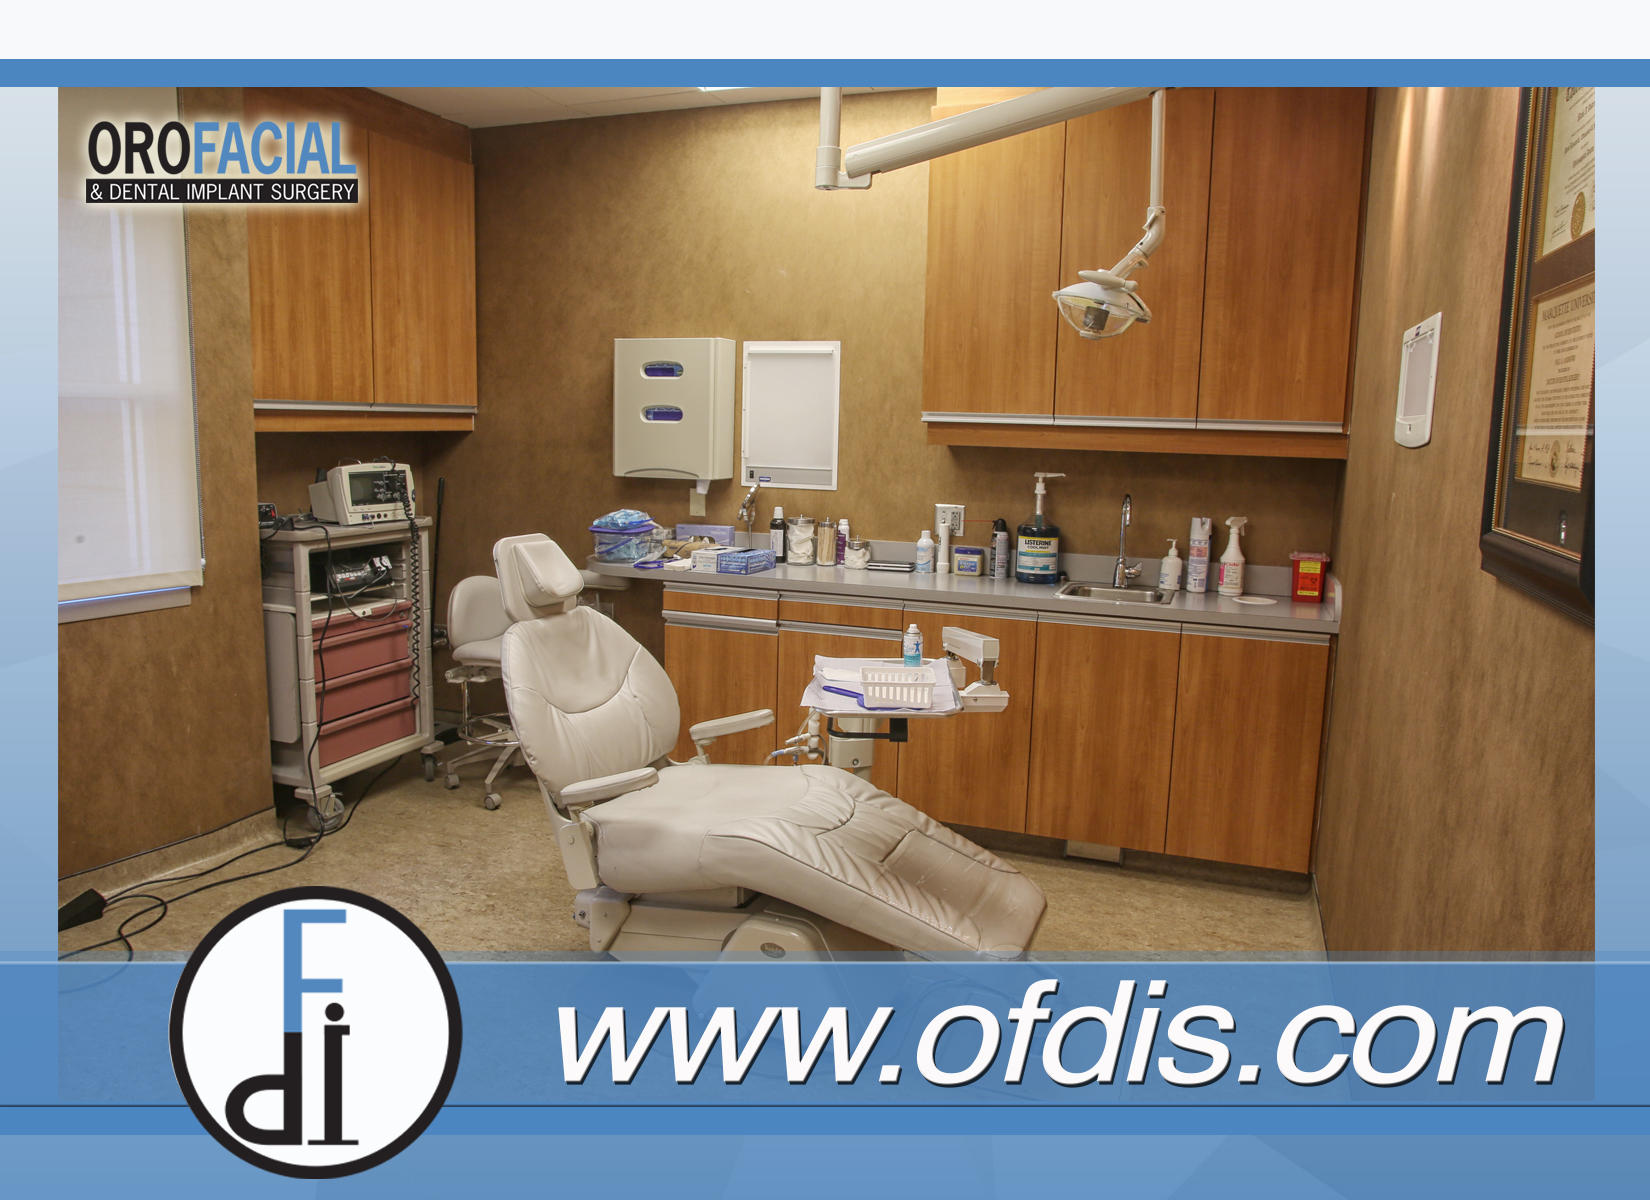 Best 30 Oral And Facial Surgery Center in Orlando, FL